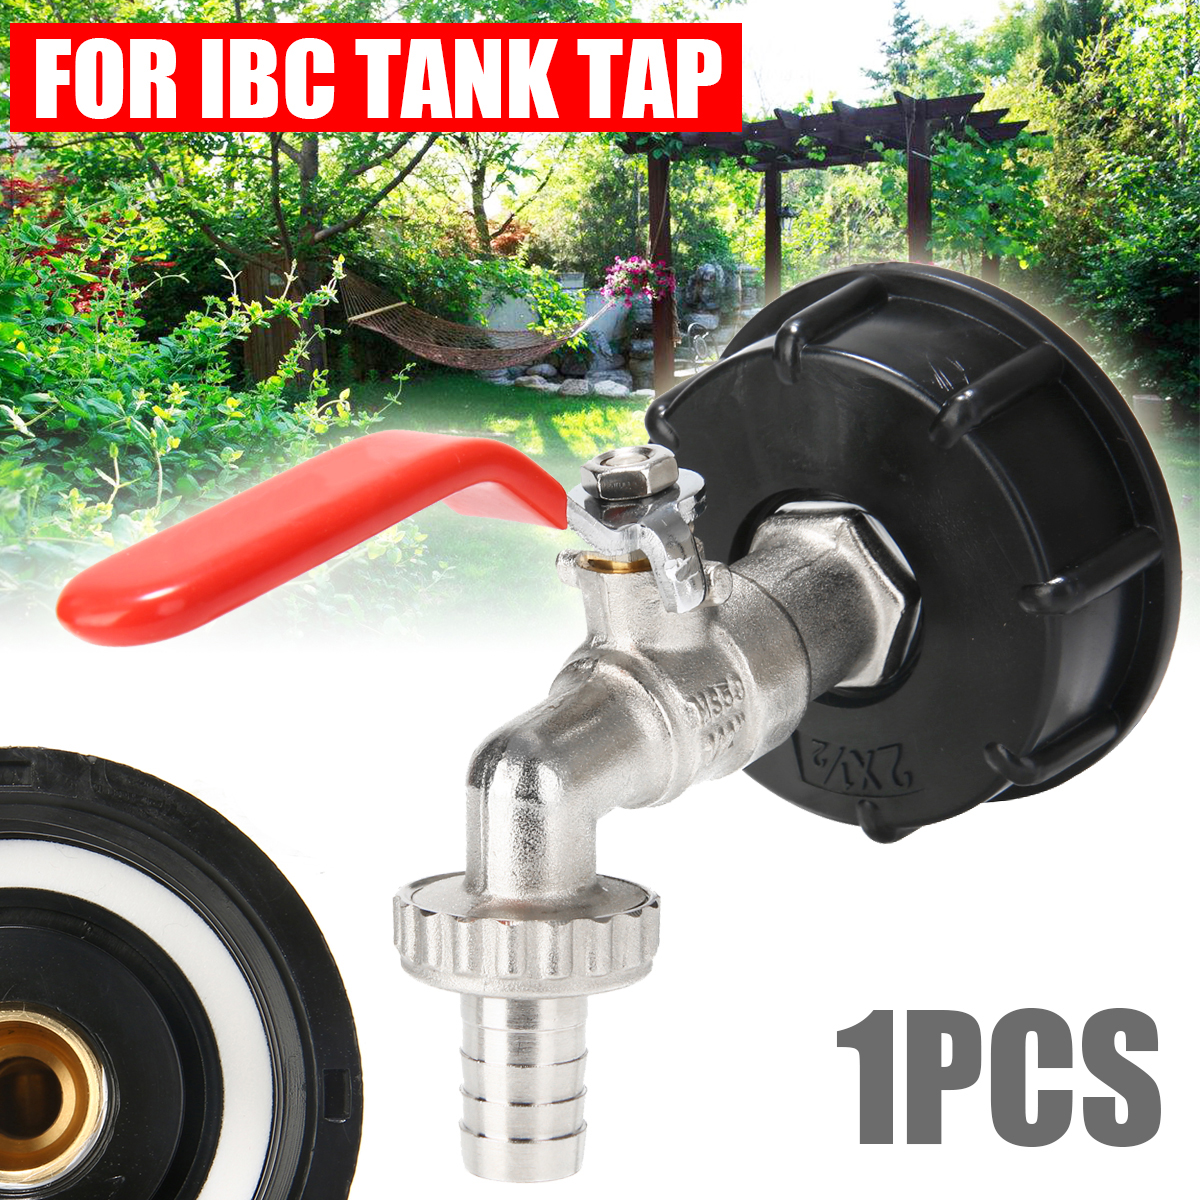 S60x6 Thread IBC Tank Tap Adapter Connector To Brass Garden Tap 1 2 quot Hose Fitting Oil Fuel Water Replacement Valve Fitting Parts in Garden Water Connectors from Home amp Garden